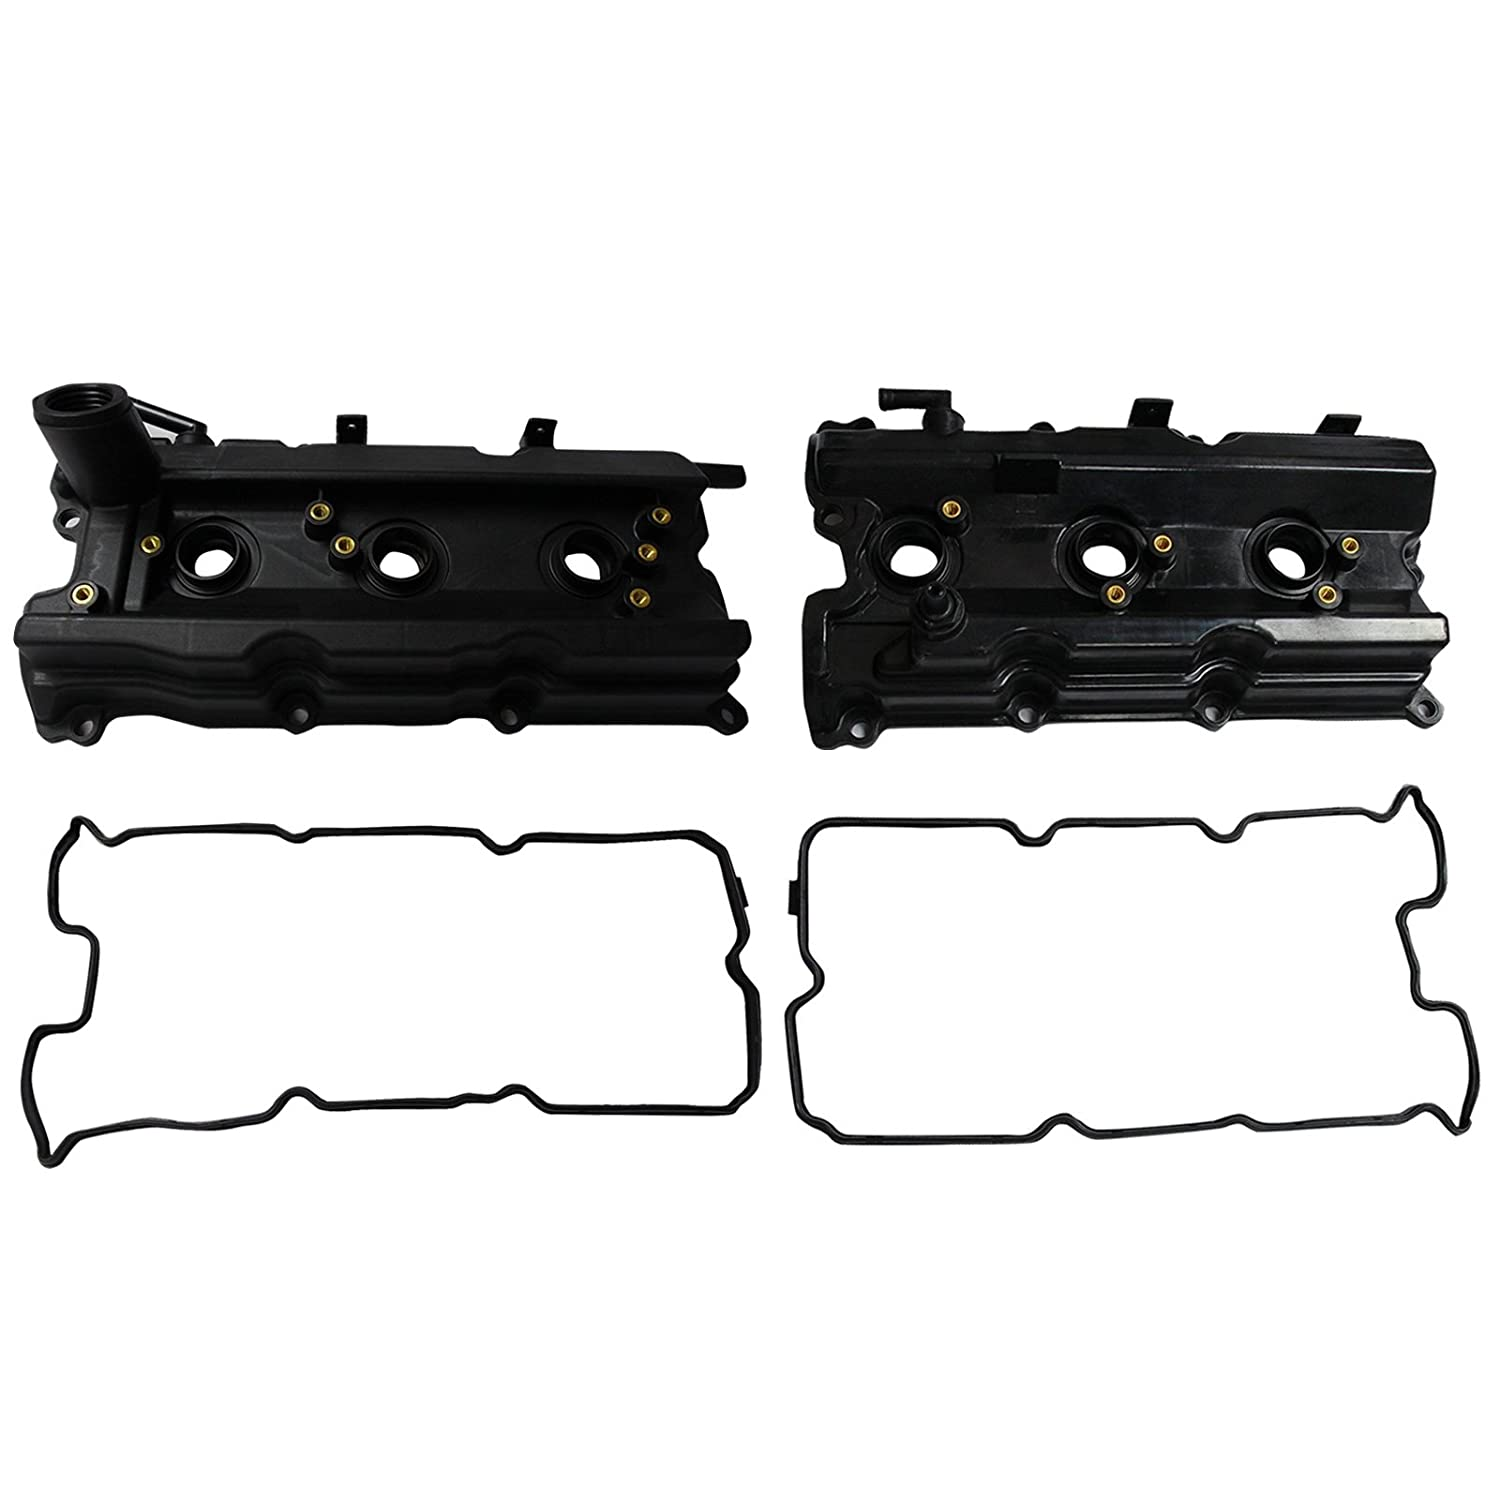 Left & Right Engine Valve Covers Fit For 03-06 Nissan 350Z Infiniti M35 FX35 G35 3.5L V6 yjracing